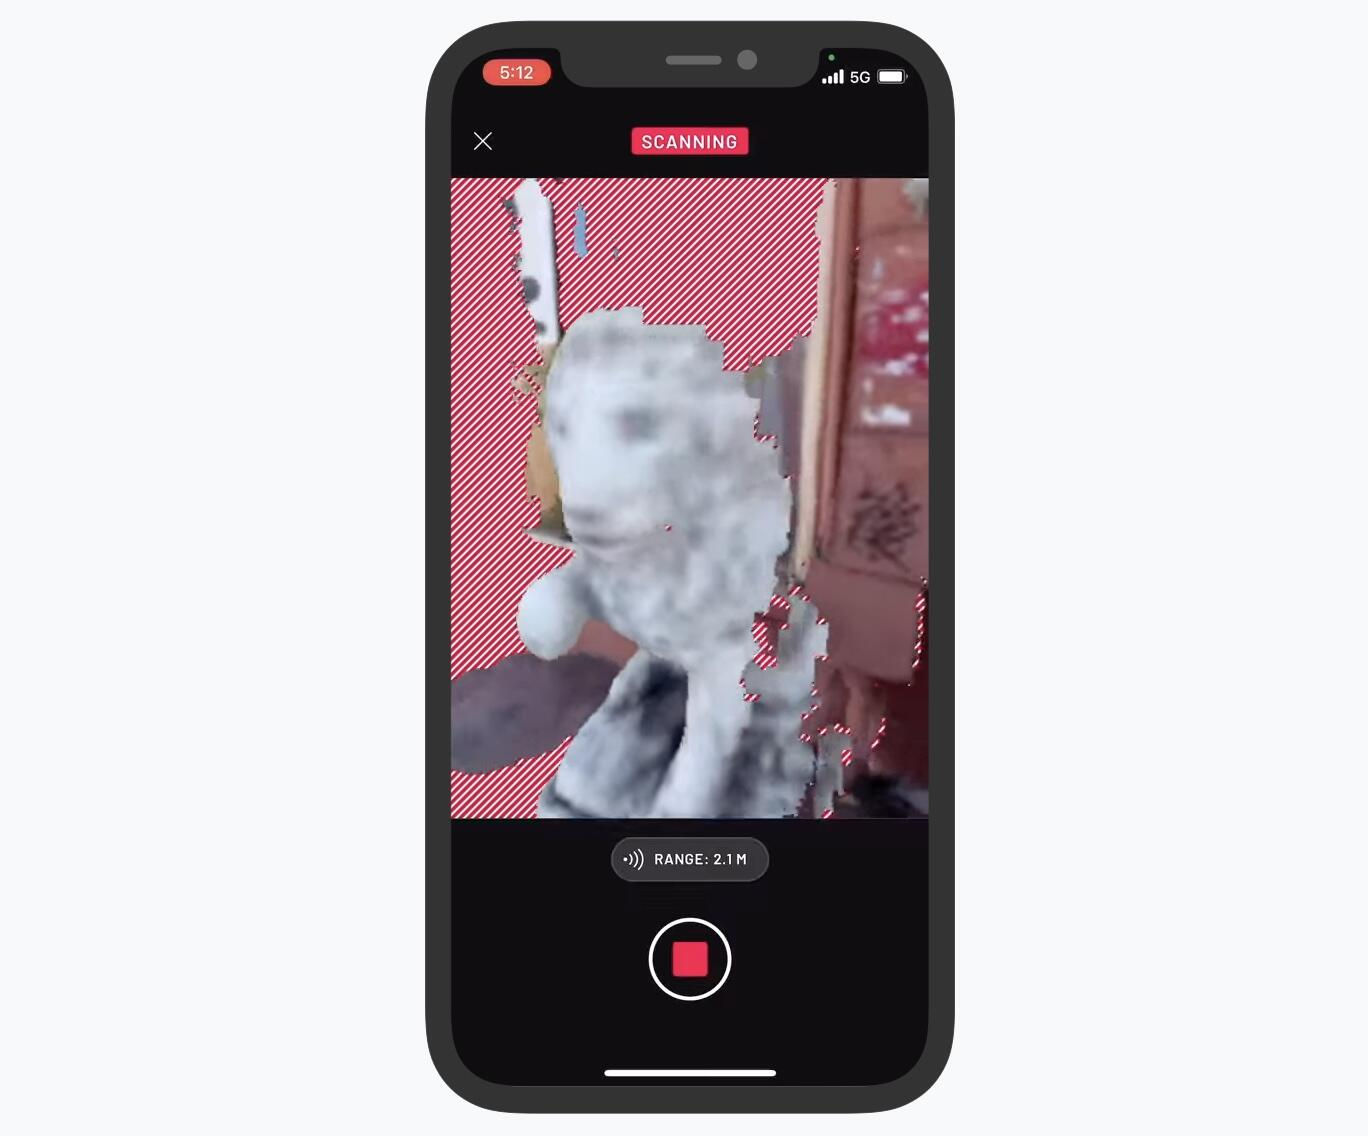 <p>iOS app Scaniverse is being acquired by Niantic: expect 3D world-scanning in future AR games.</p>